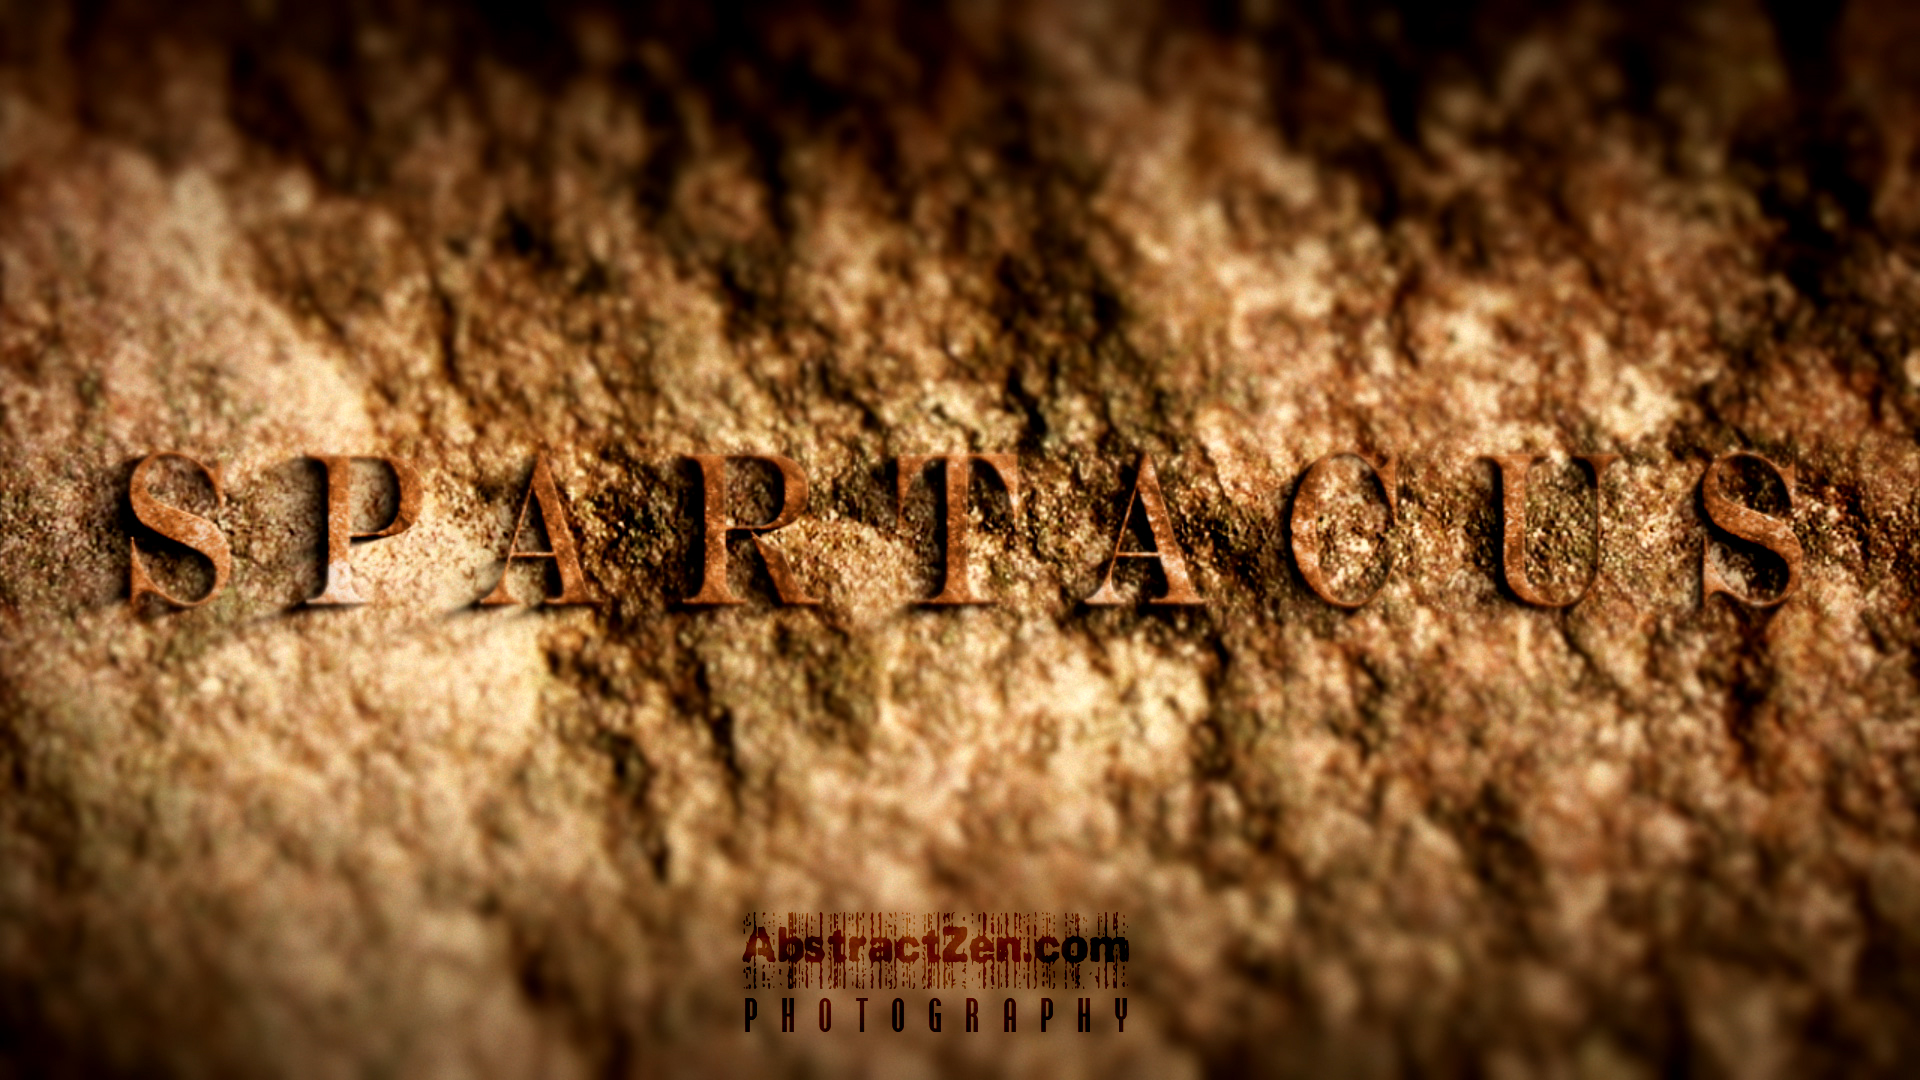 Spartacus:The Knights of Jerusalem